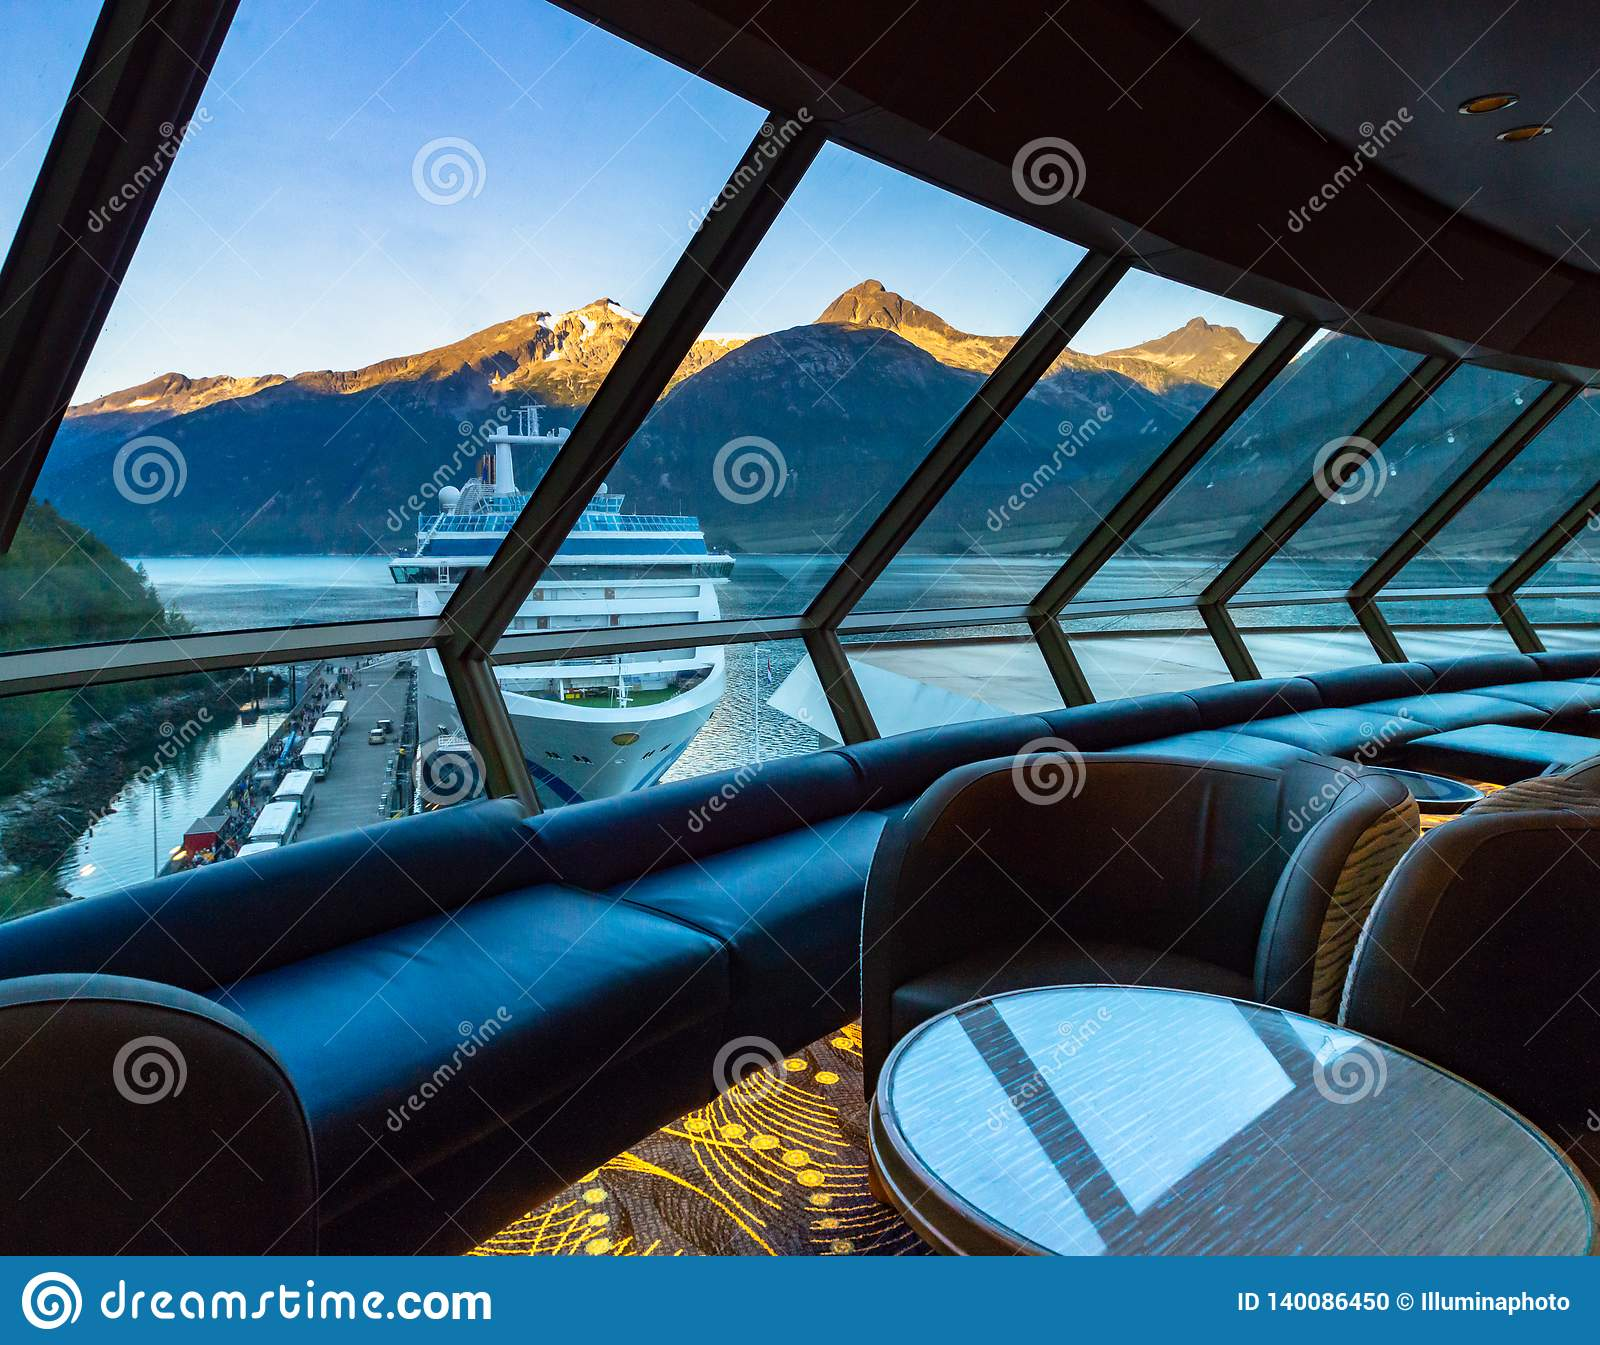 September 15, 2018 - Skagway, AK: Sunrise view of ship in port from inside The Crow`s Nest aboard The Volendam.